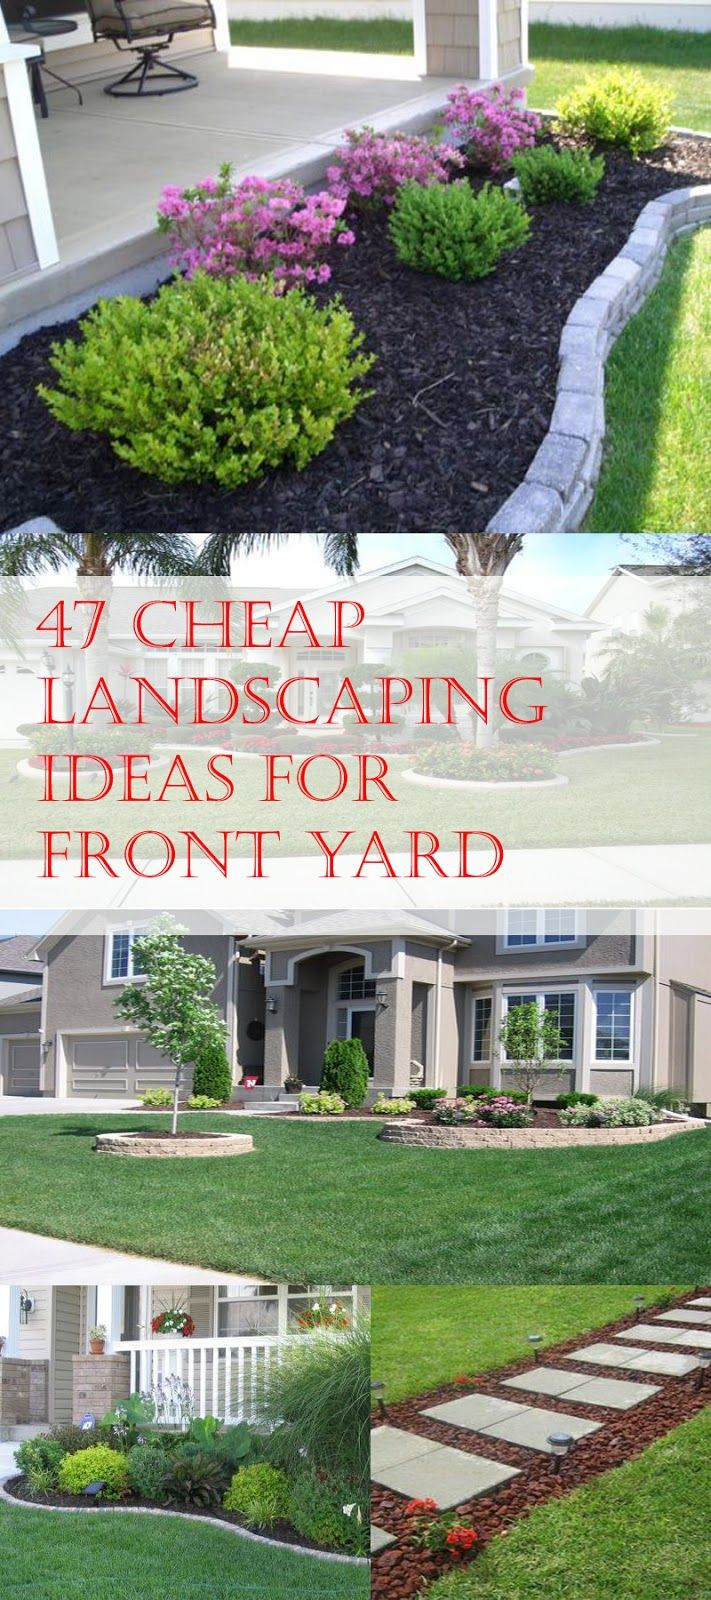 47 Cheap Landscaping Ideas For Front Yard | Landscaping Ideas ... on cheap lawn ideas, cheap irrigation ideas, landscaping gravel, cheap drywall ideas, cheap remodeling ideas, cheap jewelry ideas, cheap walkway ideas, flower garden ideas, front yard landscaping, landscaping business, garden path ideas, cheap paint ideas, swimming pool landscaping, landscaping guide, landscaping with rocks, cheap landscaping for small front yards, cheap walls ideas, easy inexpensive backyard ideas, cheap landscaping rocks, cheap backyard ideas, cheap air conditioning ideas, cheap container gardening ideas, cheap stairs ideas, curb appeal landscaping, backyard pond landscaping, landscape design ideas, landscaping course, cheap agriculture ideas, desert landscaping, cheap garden ideas, cheap fishing ideas, landscaping designs, cheap park ideas,